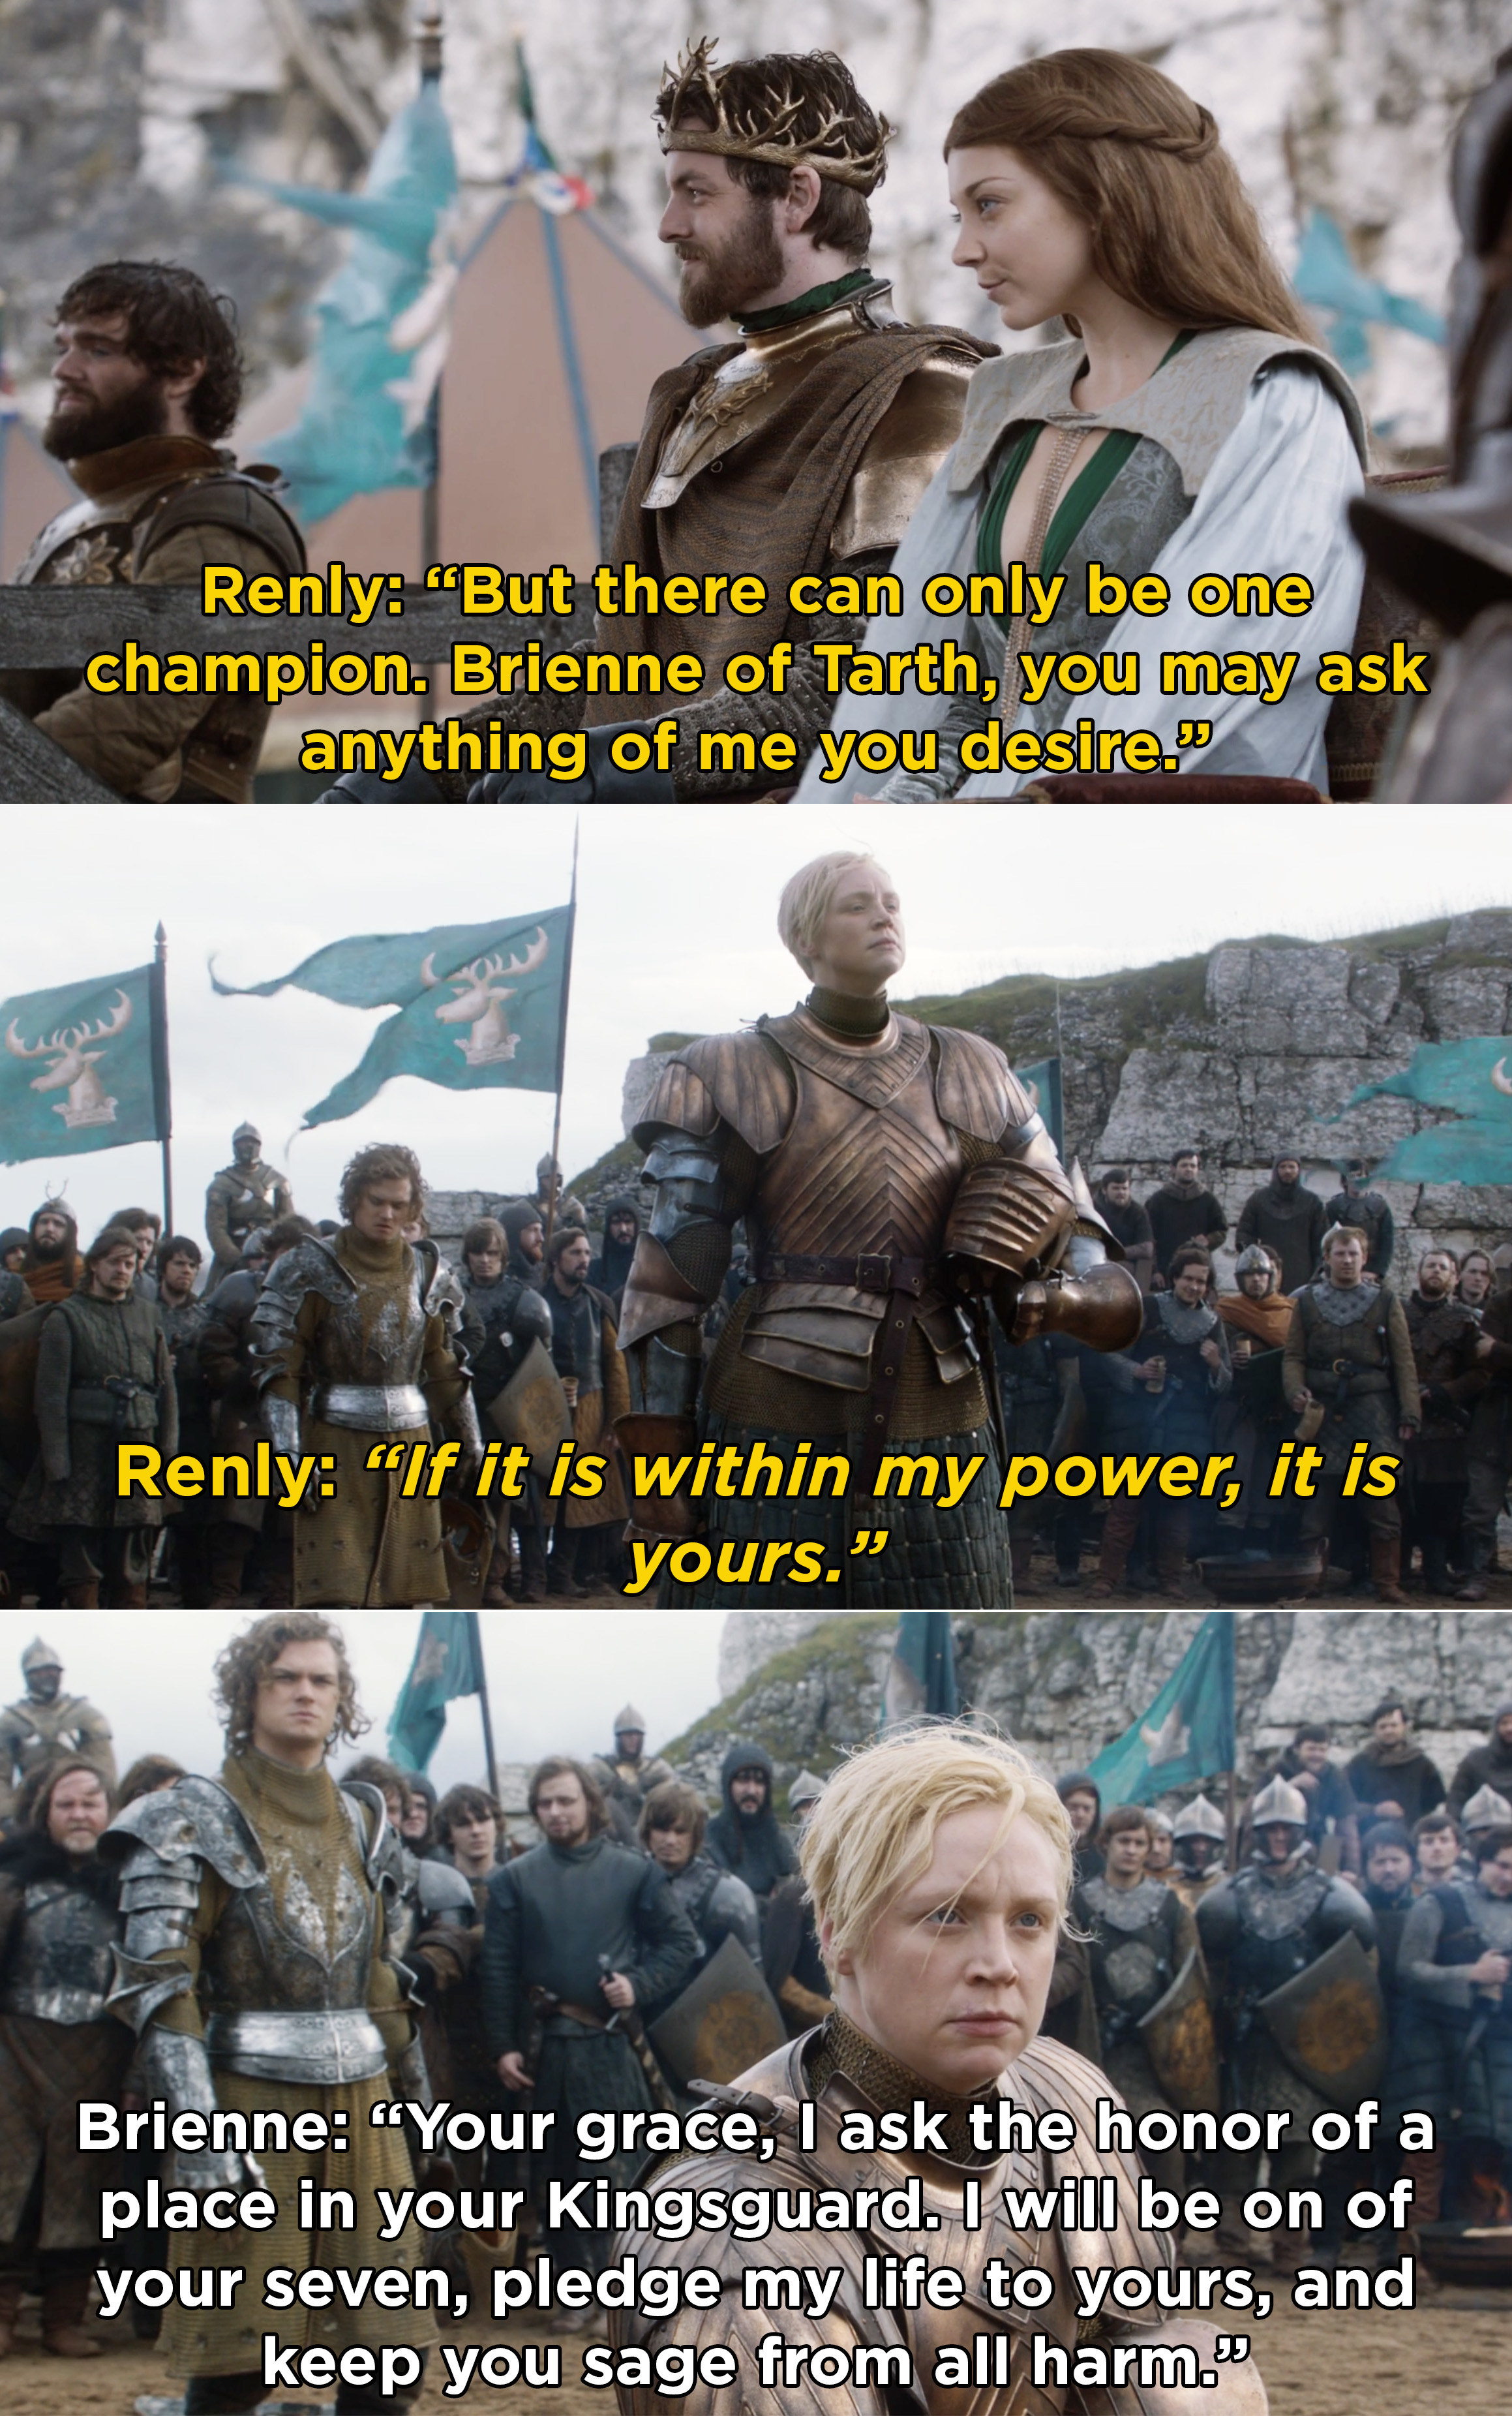 Brienne asking Renly for a place in his Kingsguard